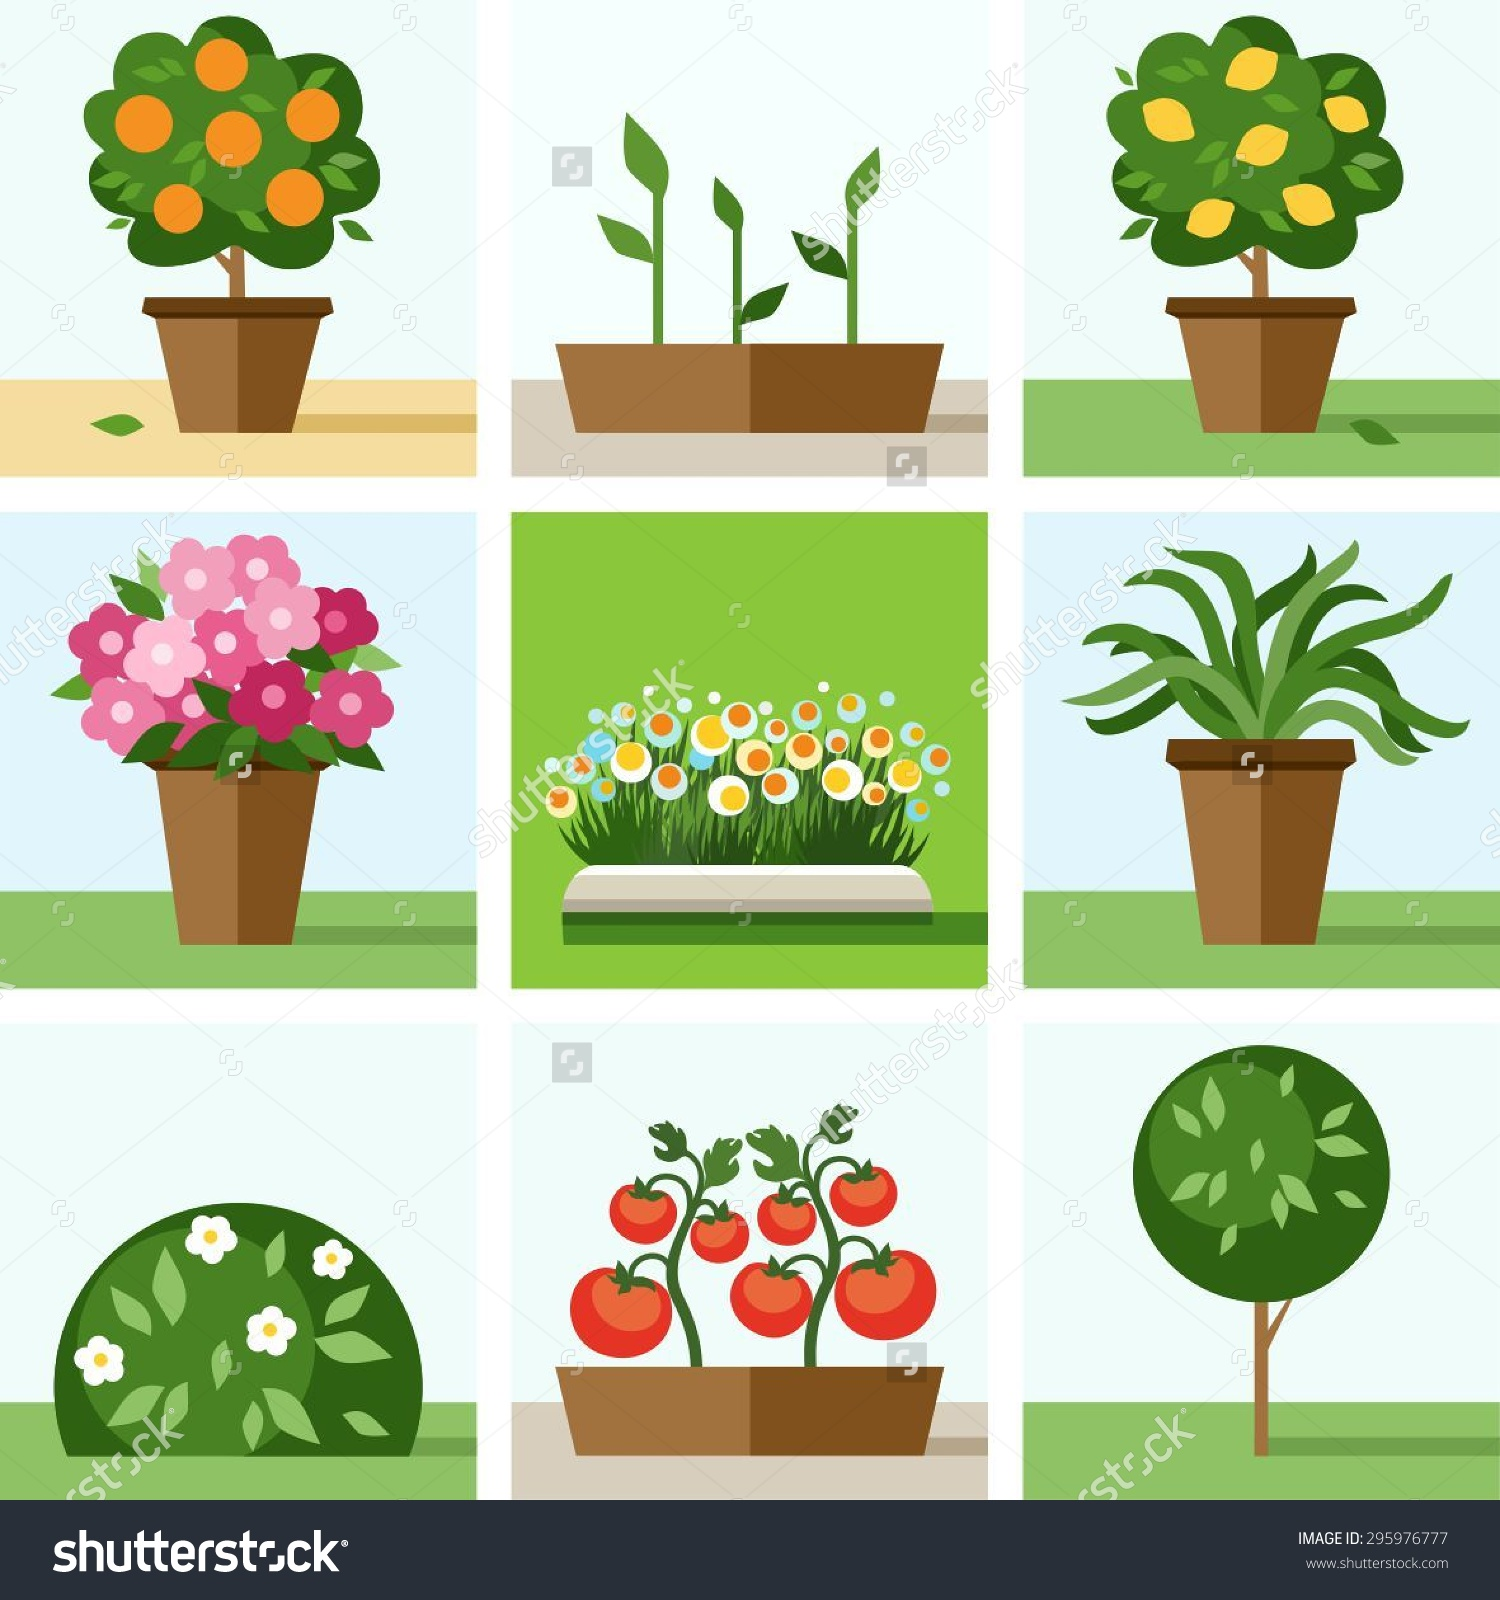 Garden Vegetable Garden Flowers Trees Shrubs Stock Vector.